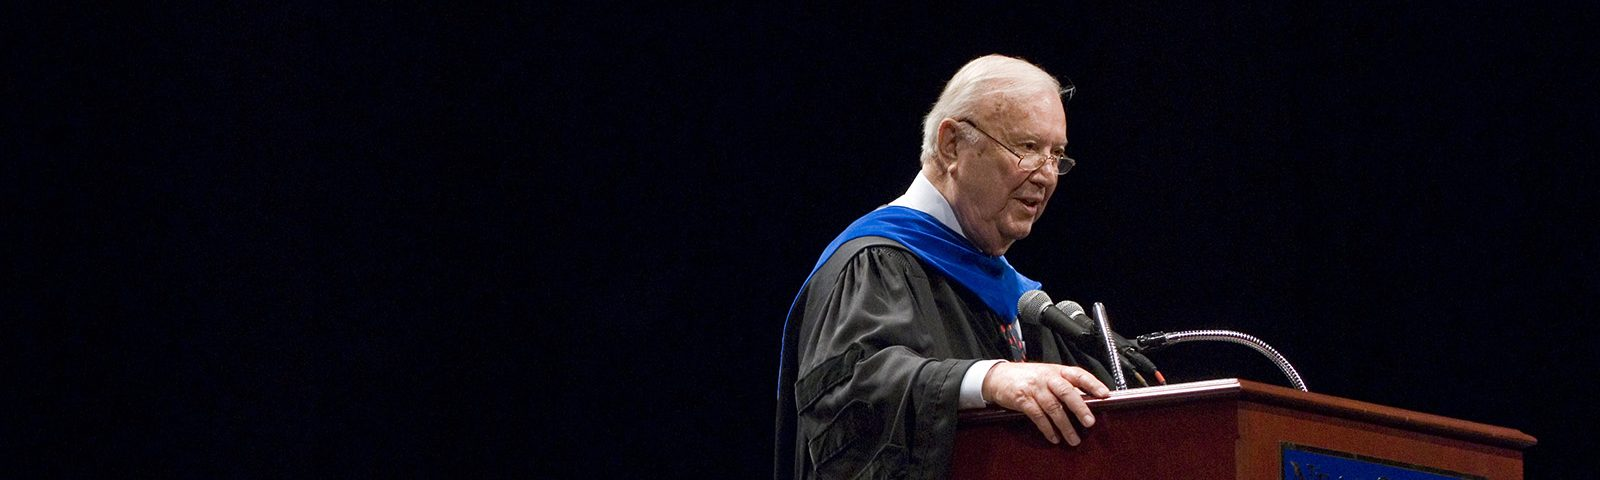 In Memoriam: Ray Neag '56 — Ray Neag gives the address during the 2007 Neag School of Education Commencement ceremony at the Jorgensen Center for the Performing Arts.